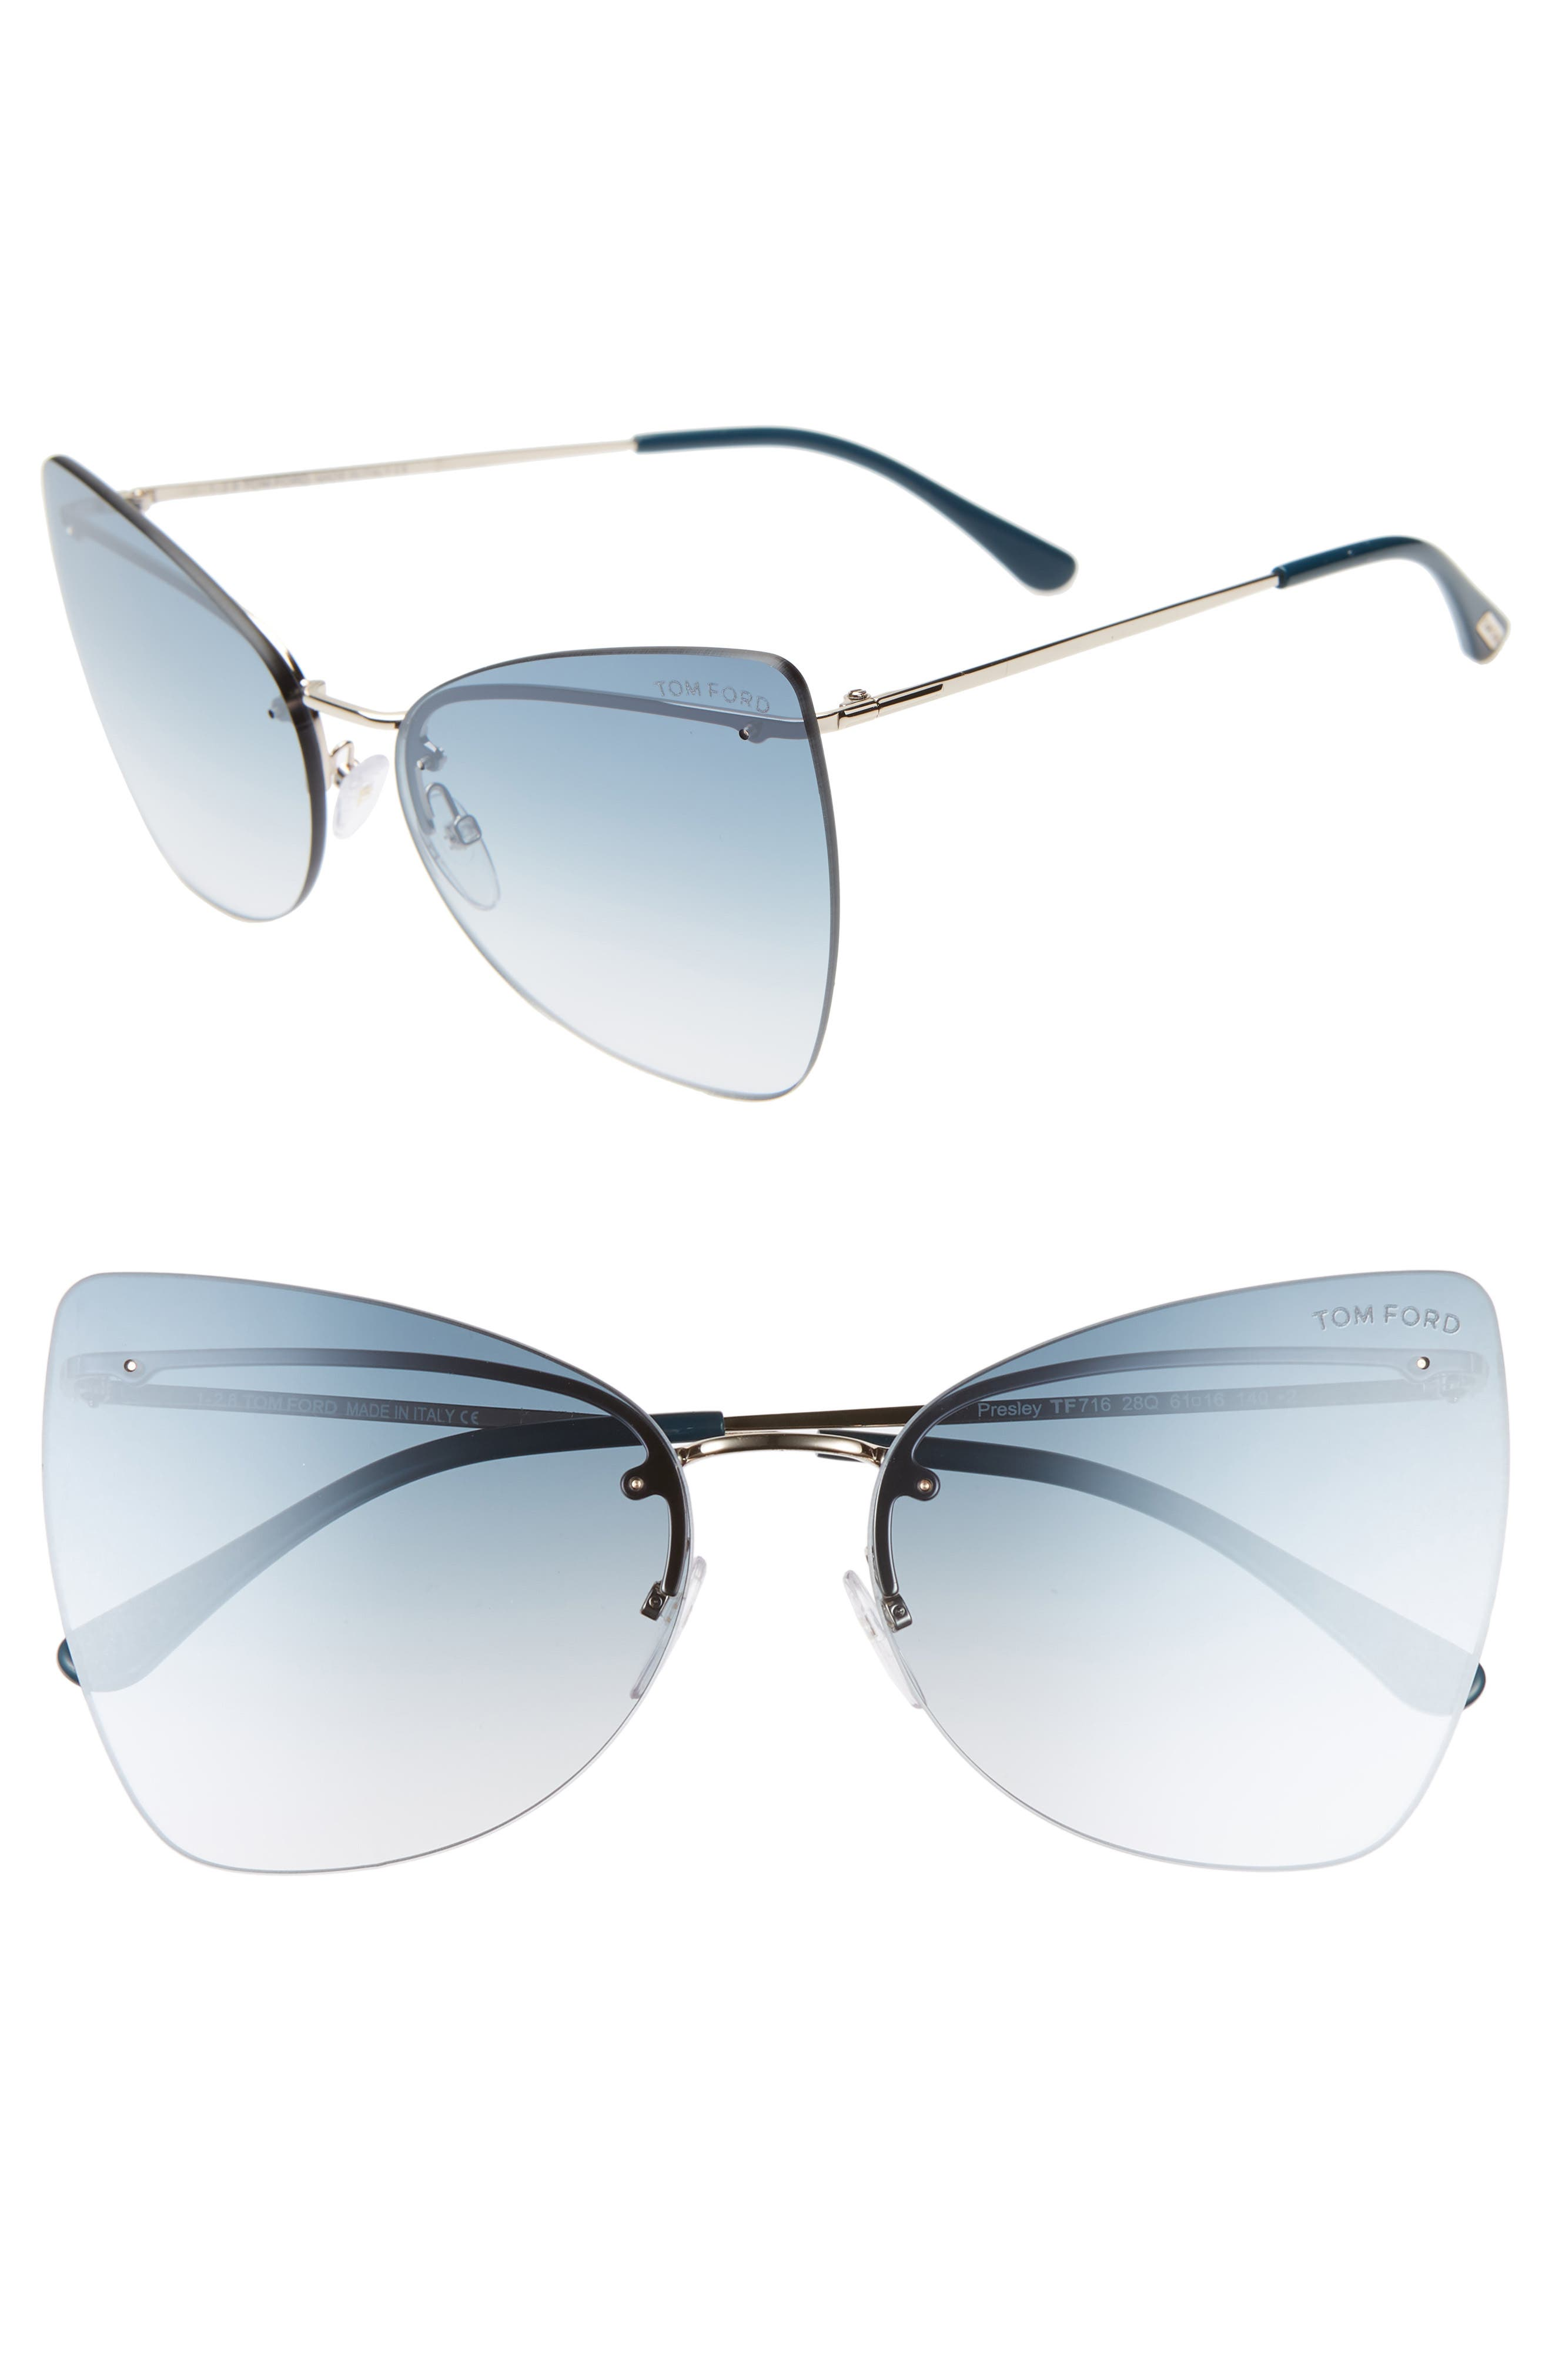 Tom Ford Presley 61Mm Butterfly Sunglasses - Rose Gld/ Blue/turq Sand Silv